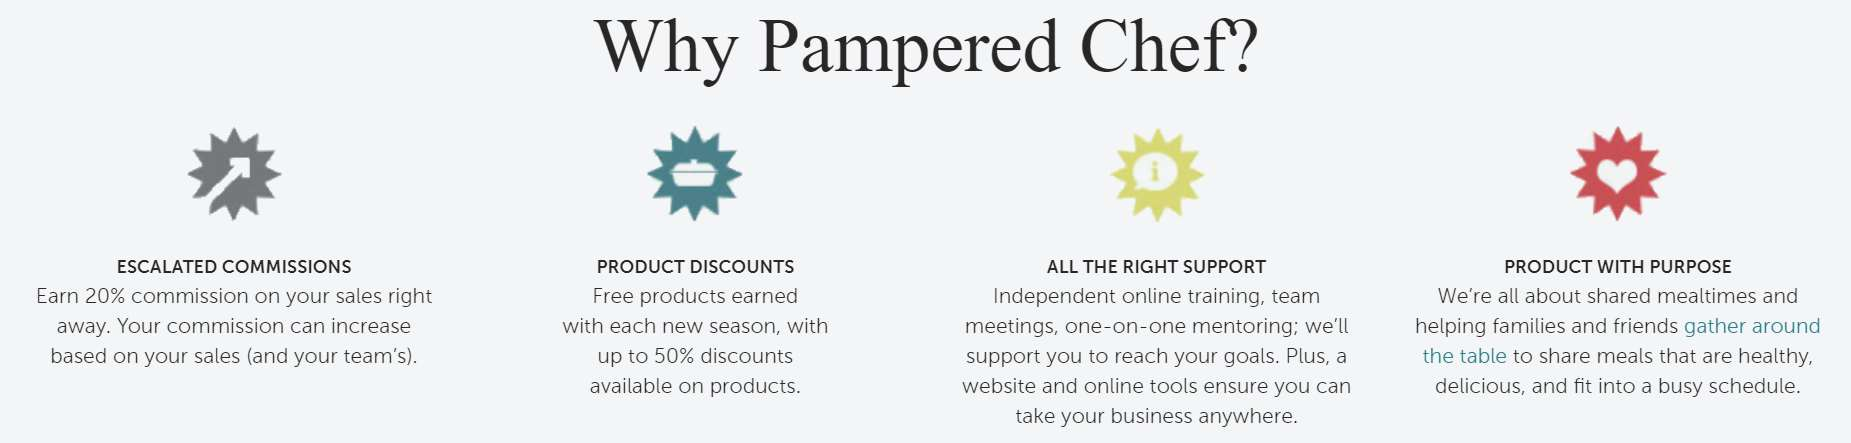 A screenshot of Pampered Chef's consultant benefits.